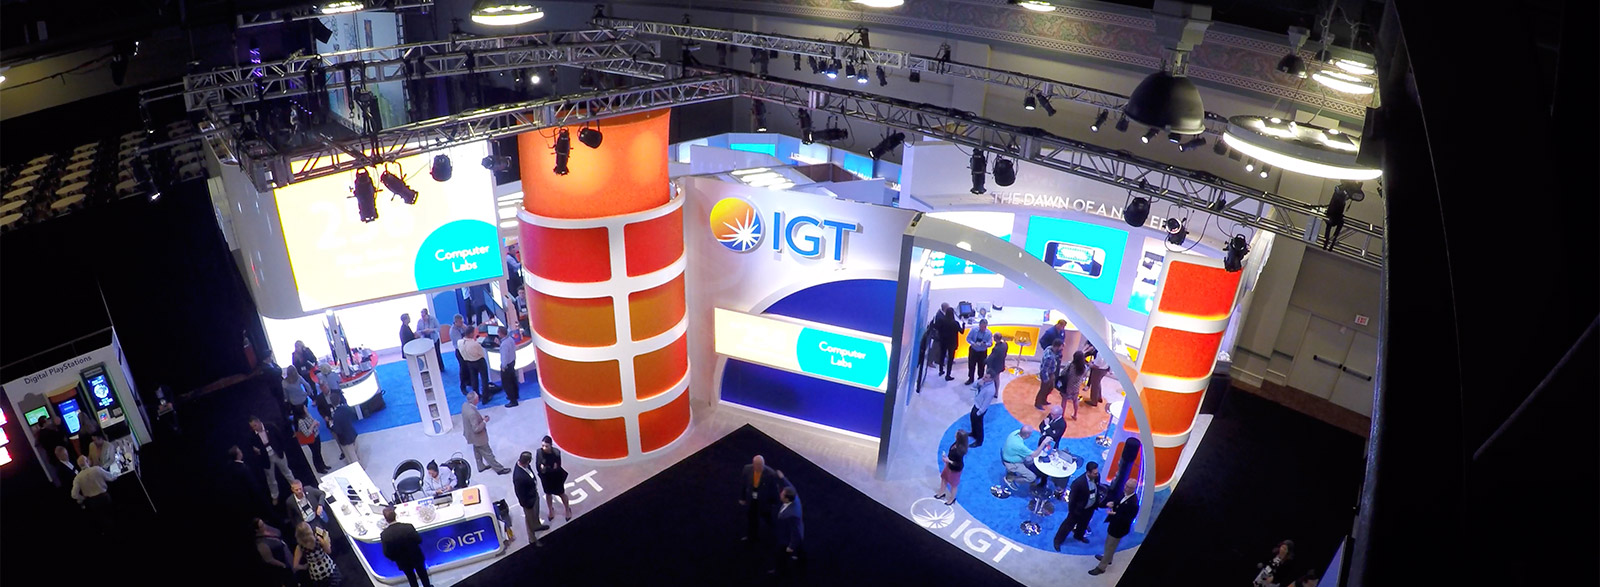 IGT NASPL 2015 PROJECT SPOTLIGHT Case Study